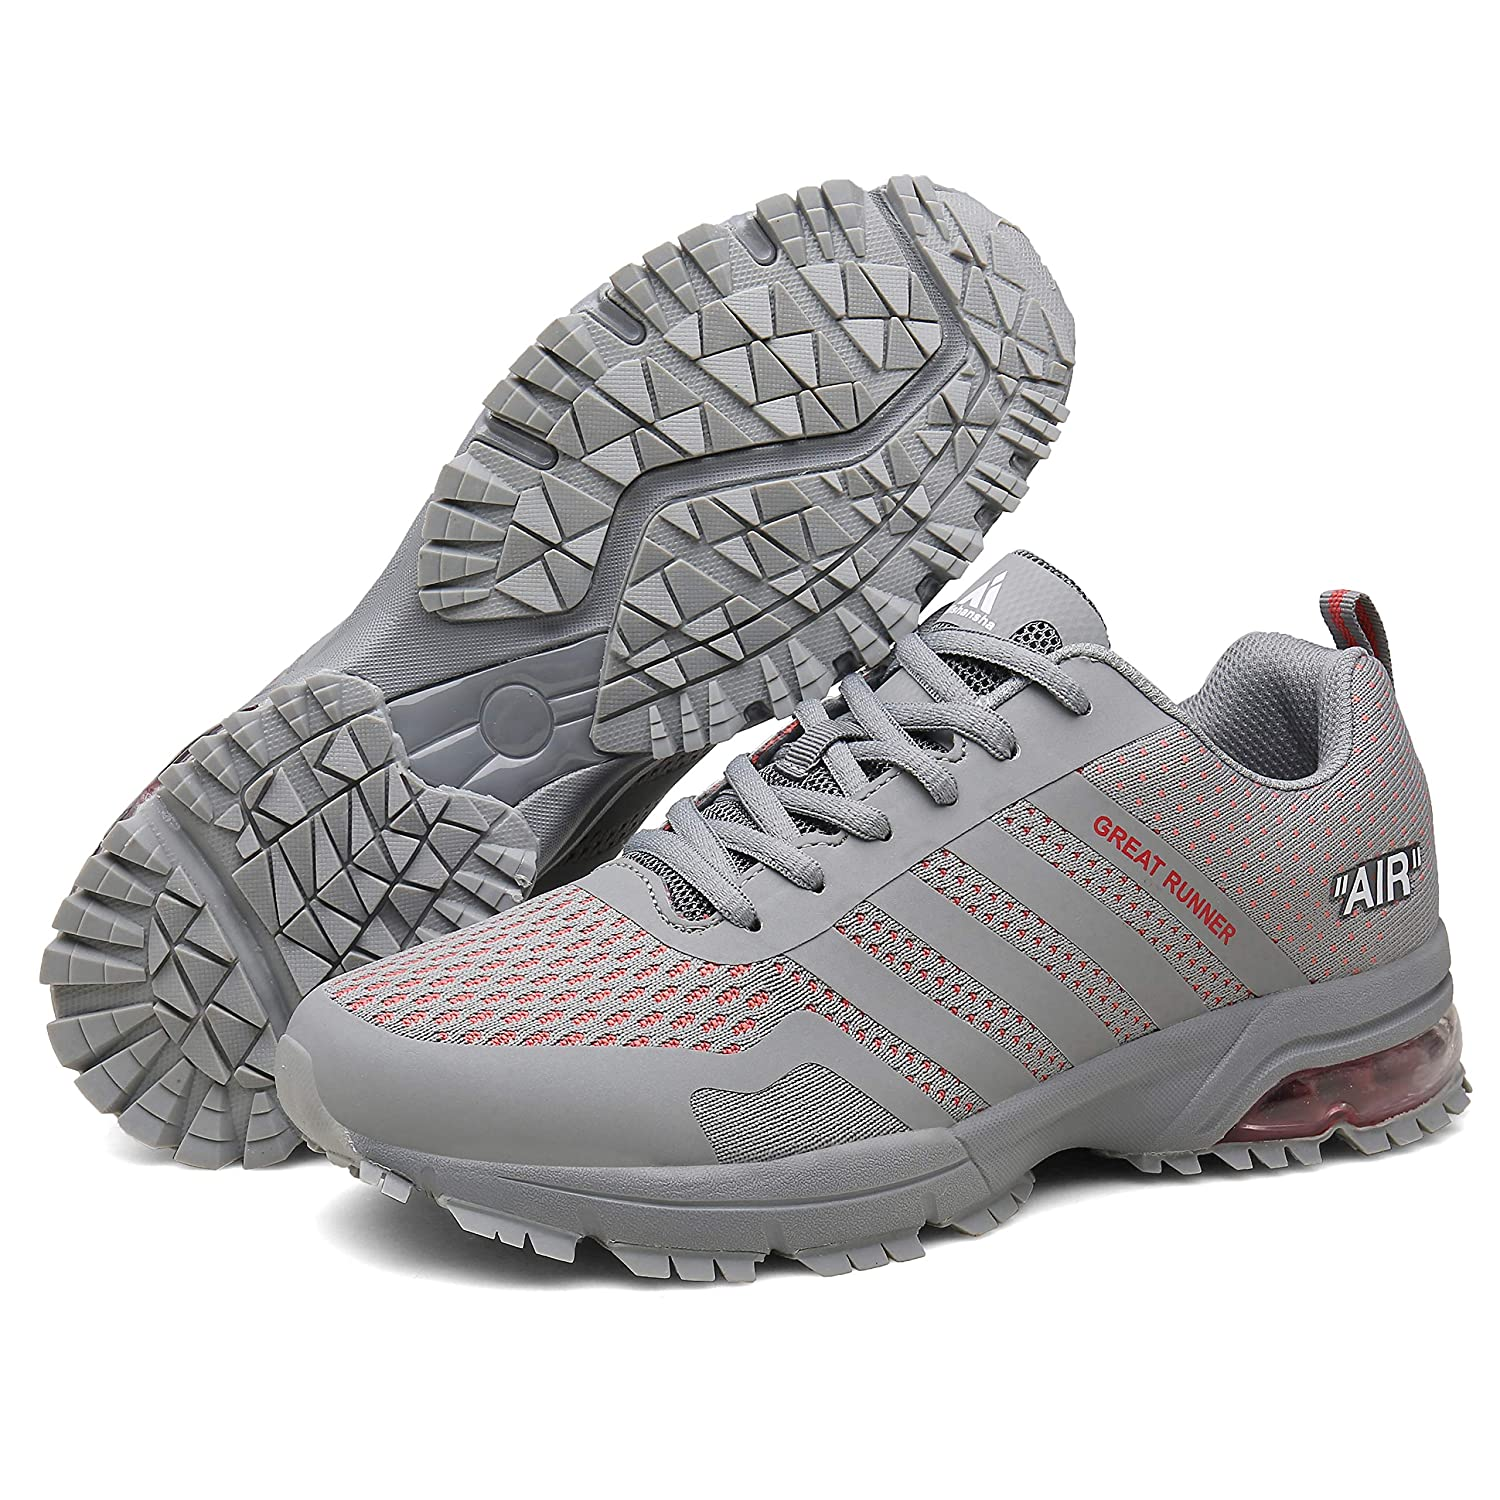 Homme Chaussures de Course Basket Running Sport Trail Outdoor Fitness Shoes Femme